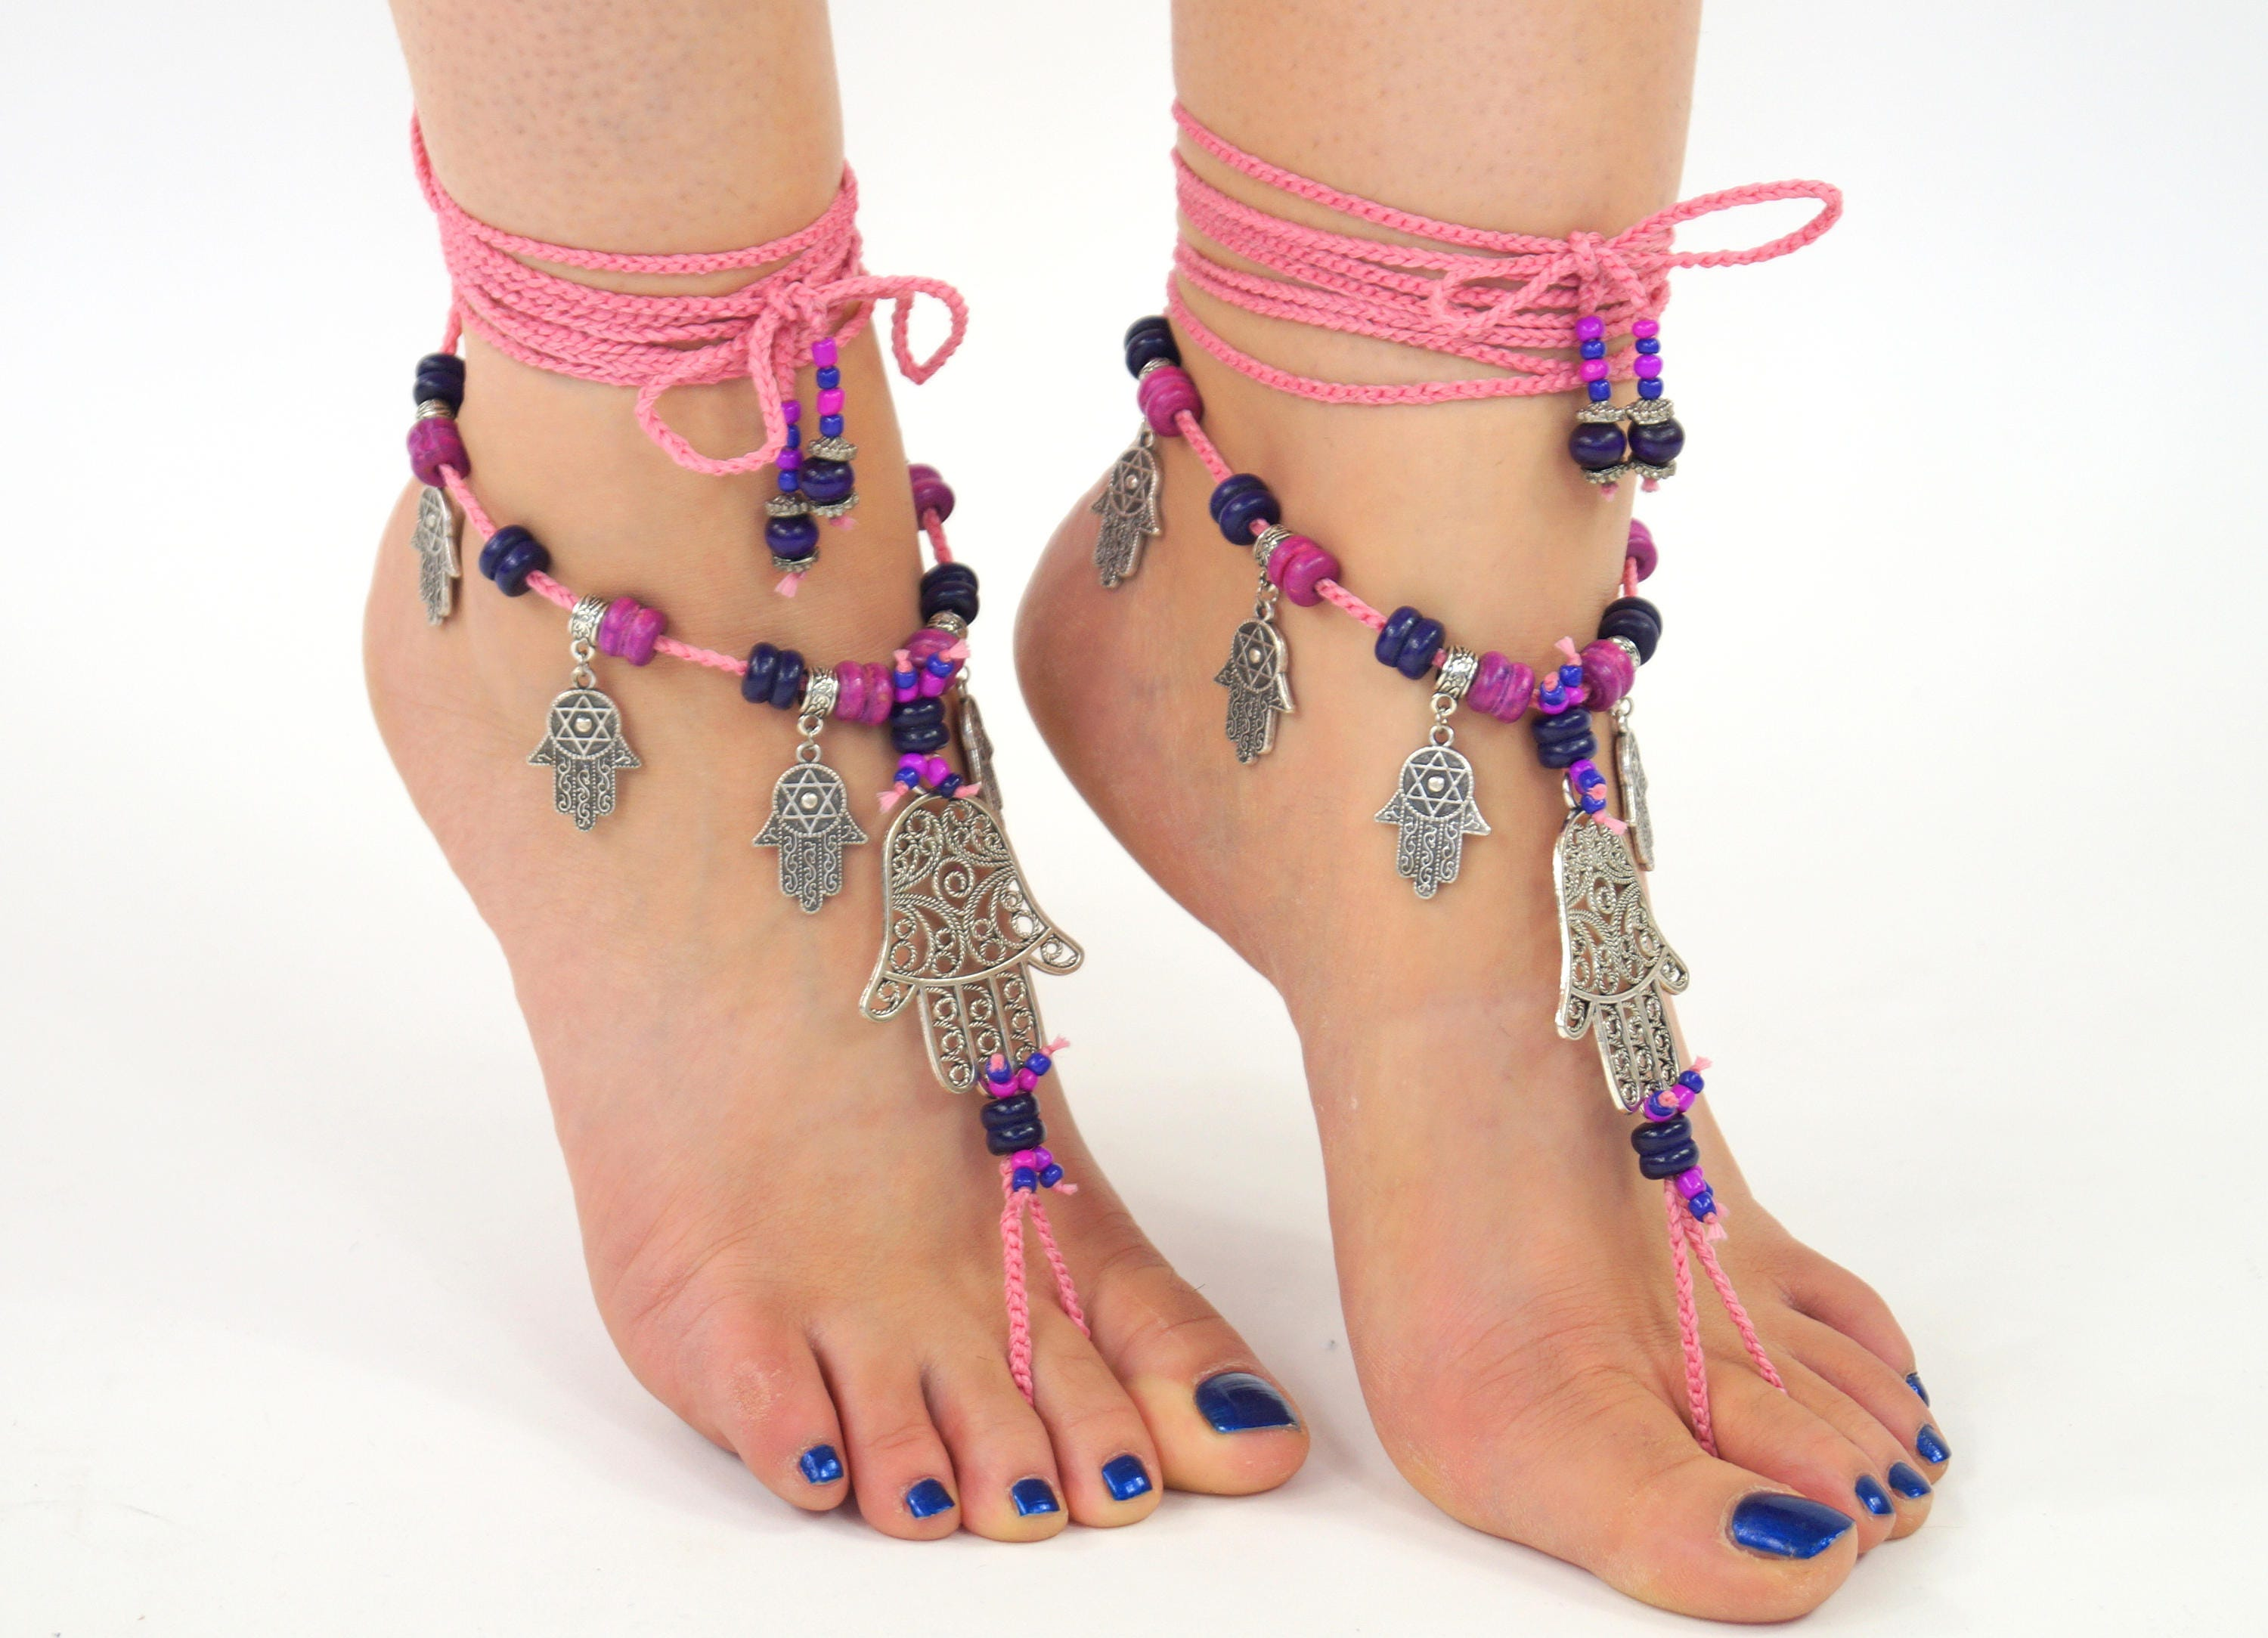 bellydance yoga anklet black usd beach nude foot pool media steampunk jewelry shoes sandals lace bridal sexy barefoot